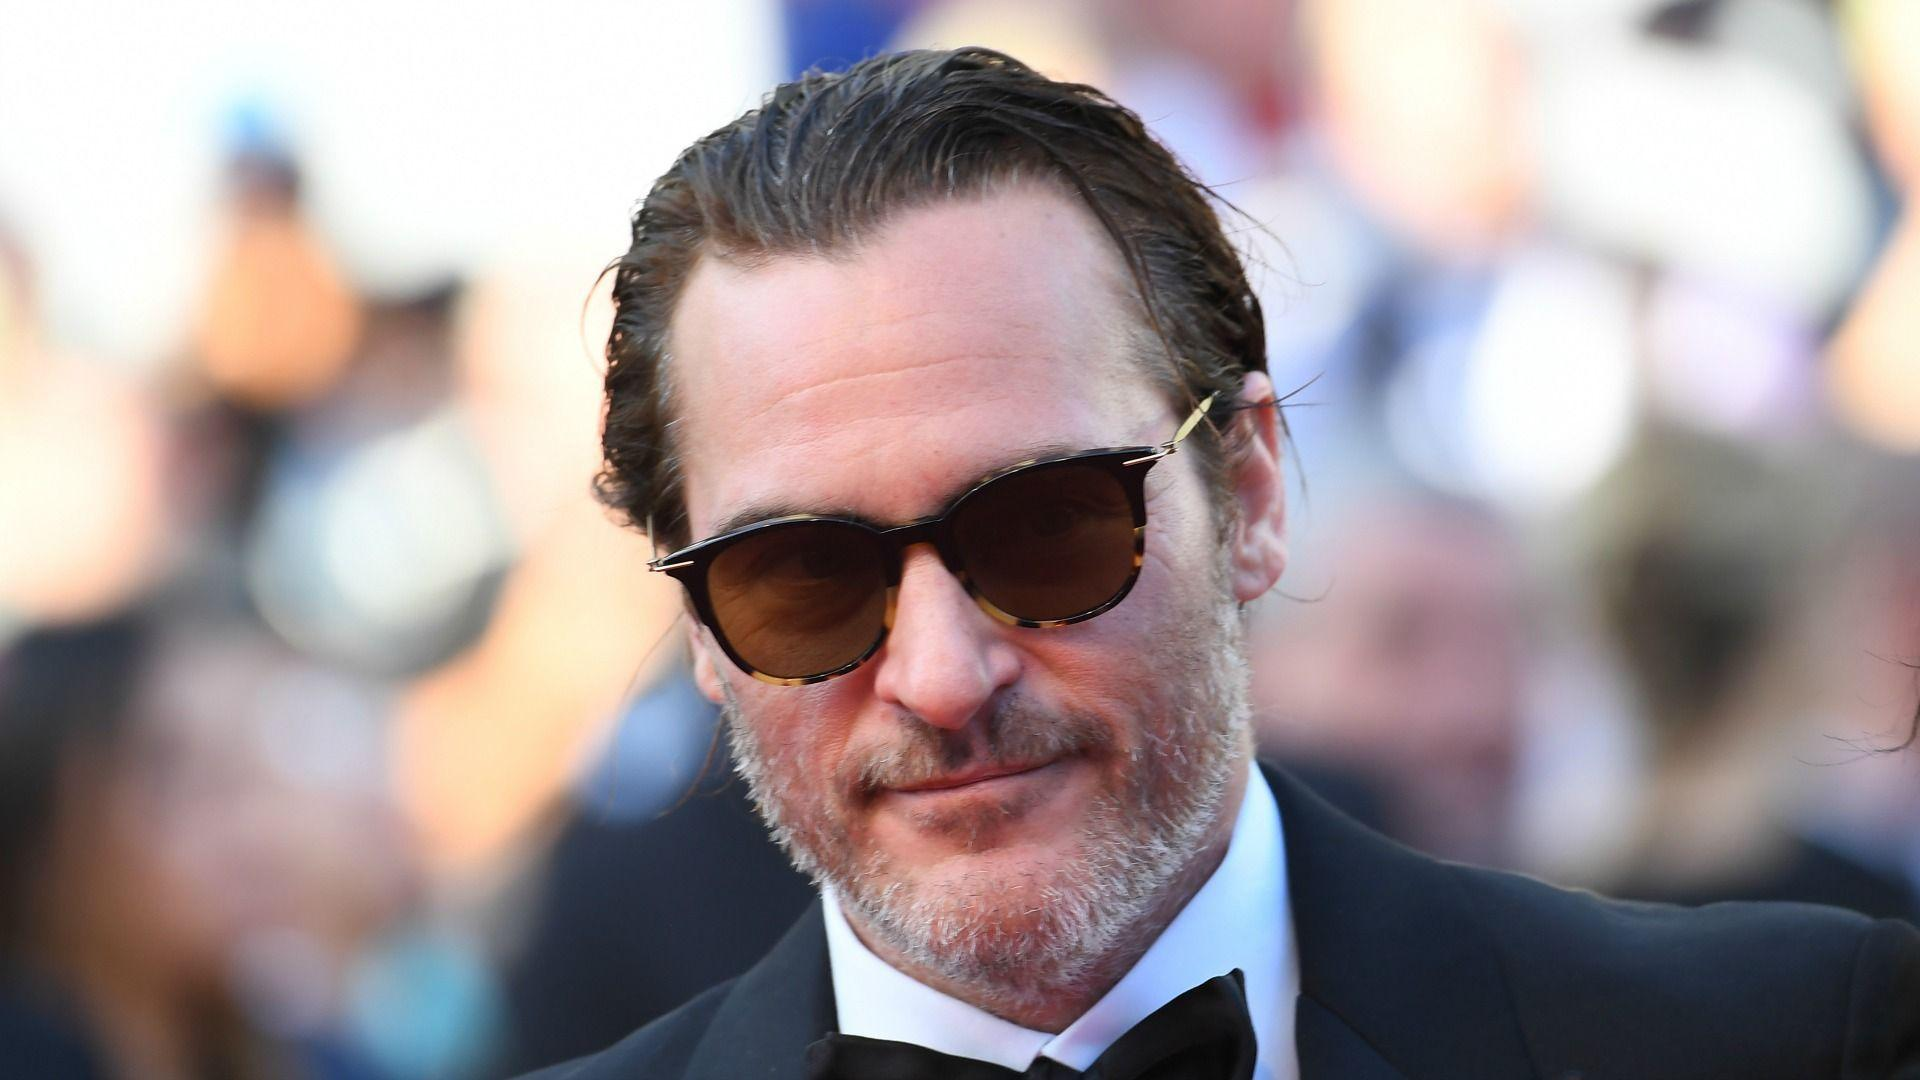 Joaquin Phoenix Latest Full HD Wallpapers And Pictures